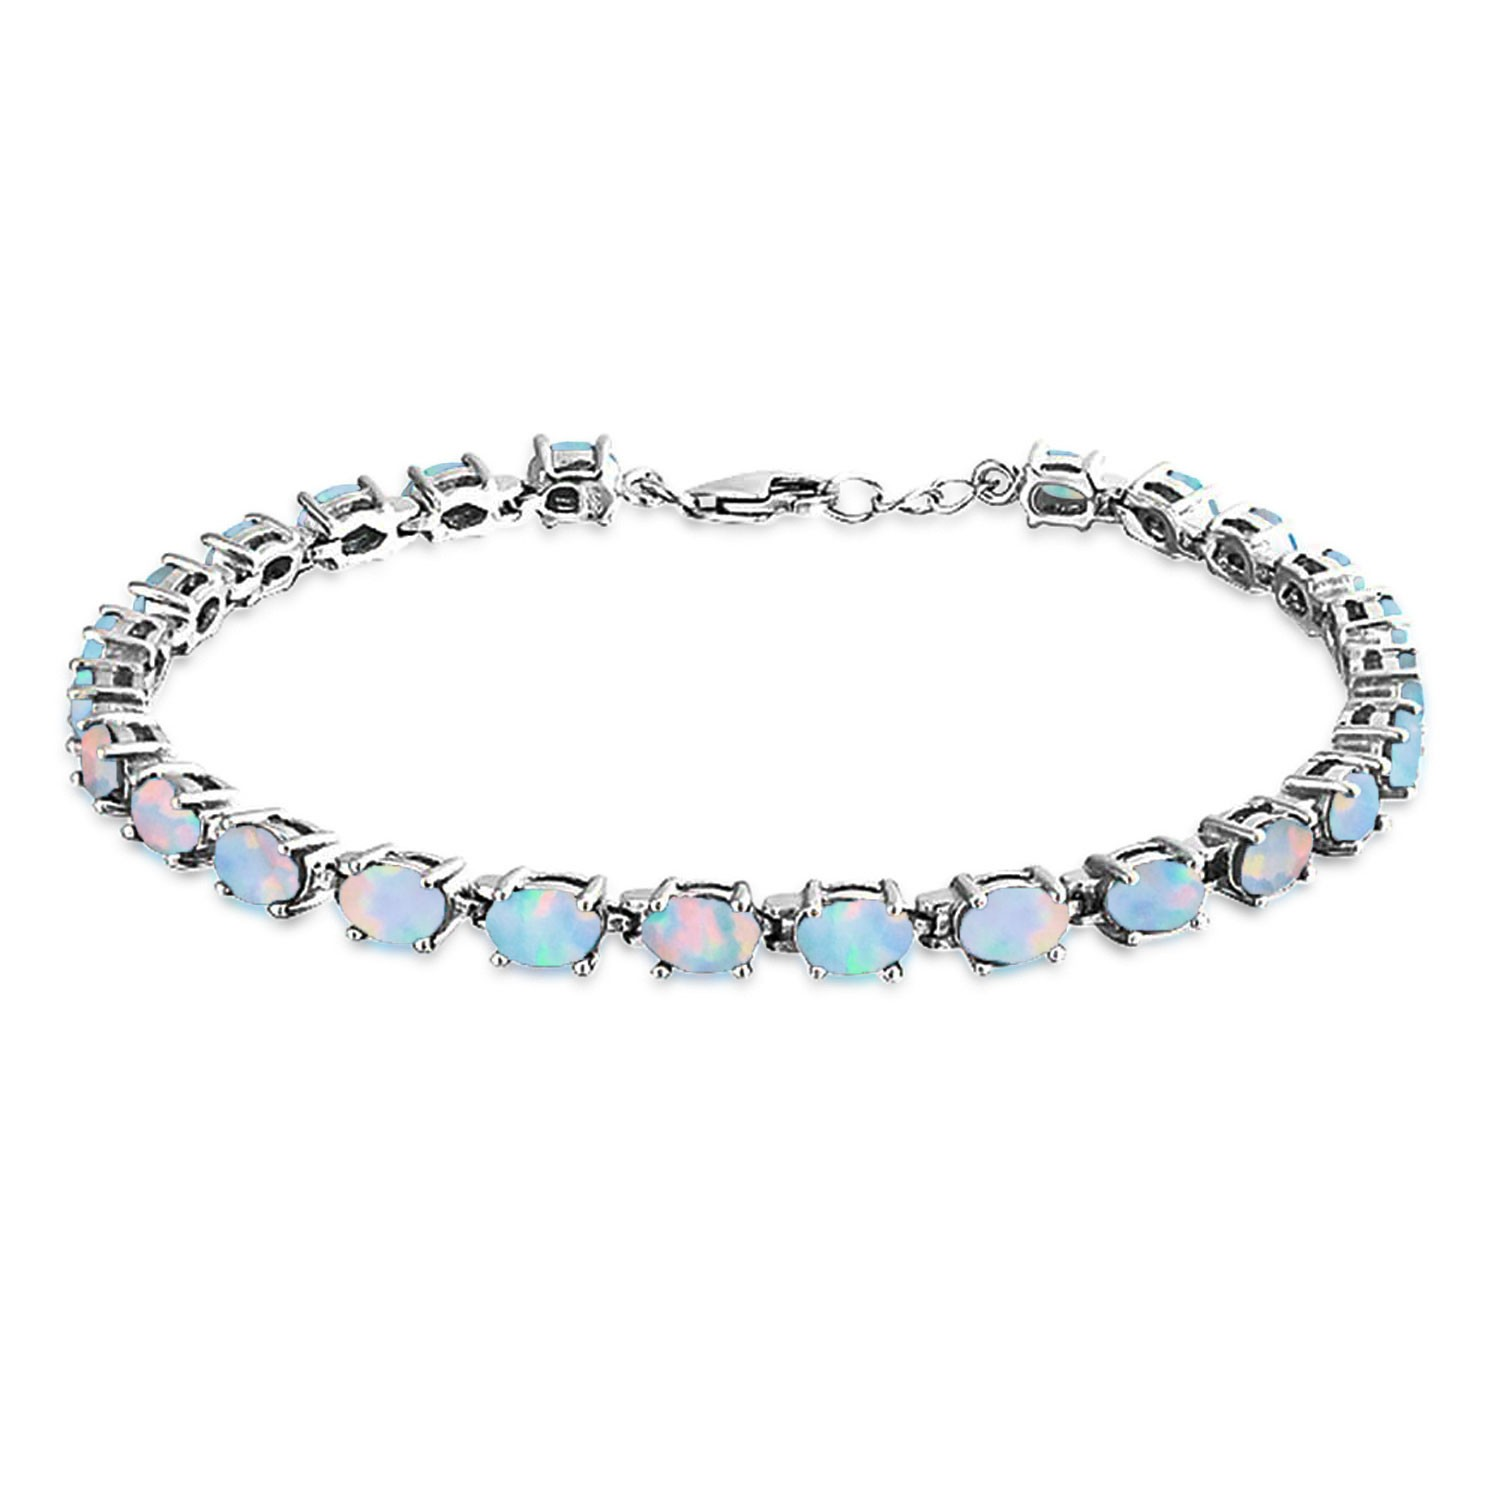 opal bracelet bling jewelry 925 silver synthetic opal oval tennis bracelet 7.5in rjovdfc